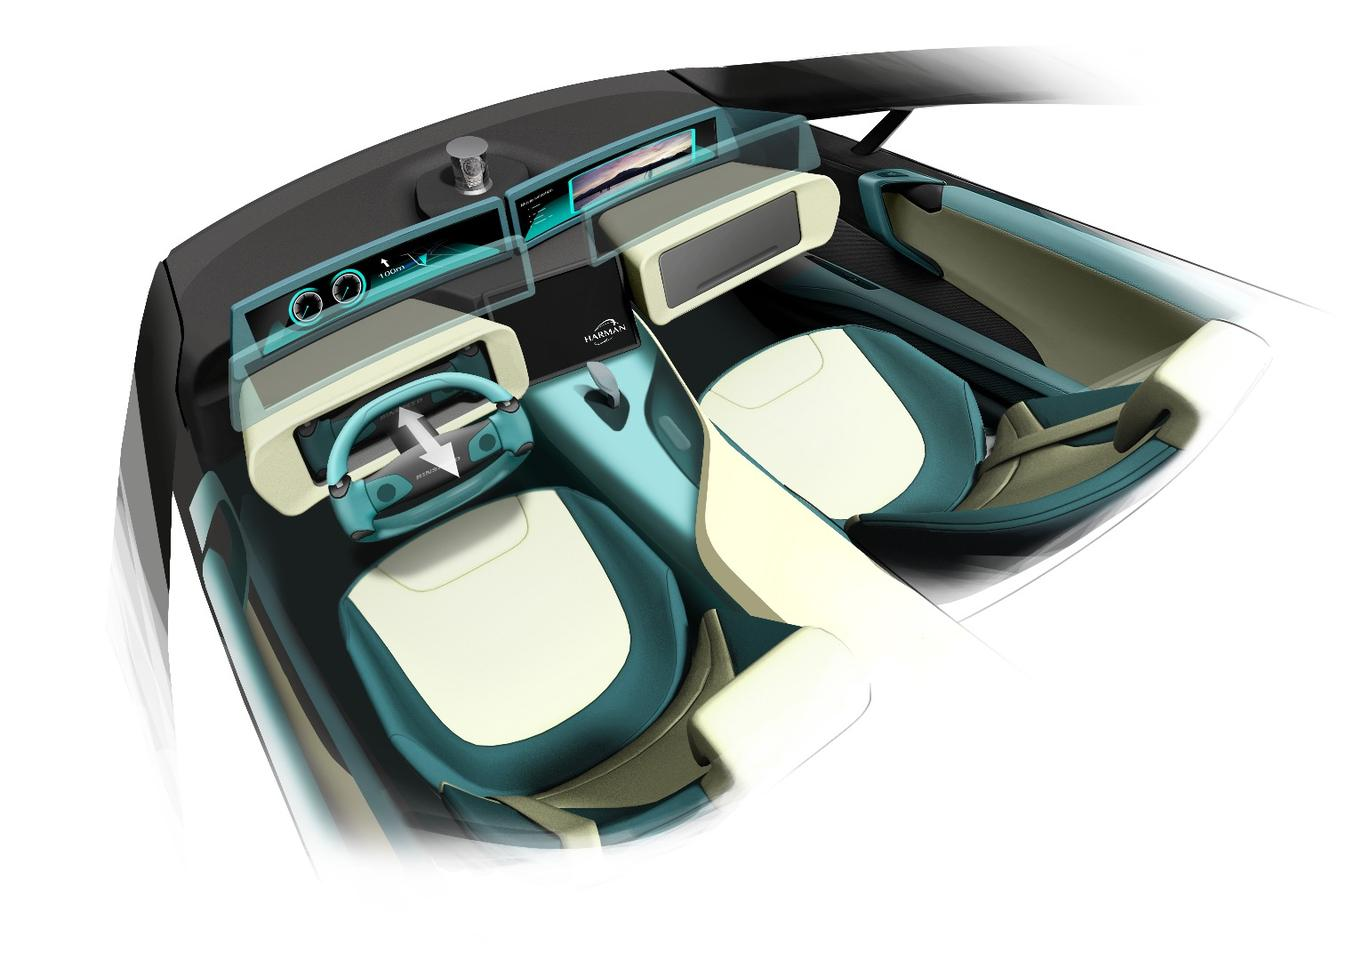 Inside, the dashboard transforms from driving to autonomous mode